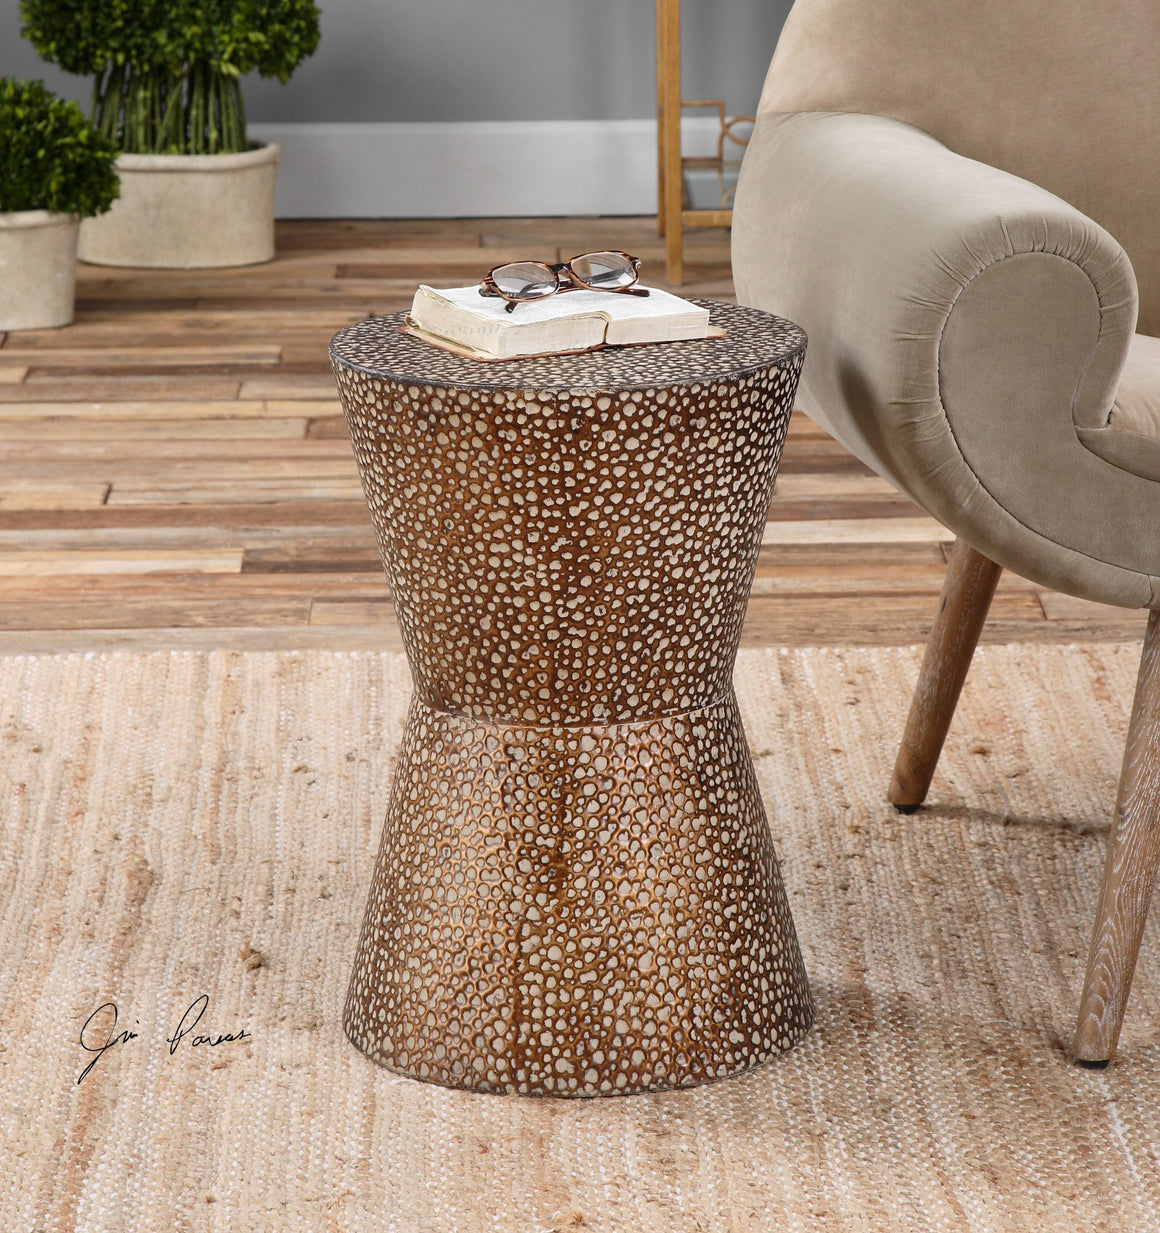 Cutler Drum Shaped Accent Table - taylor ray decor